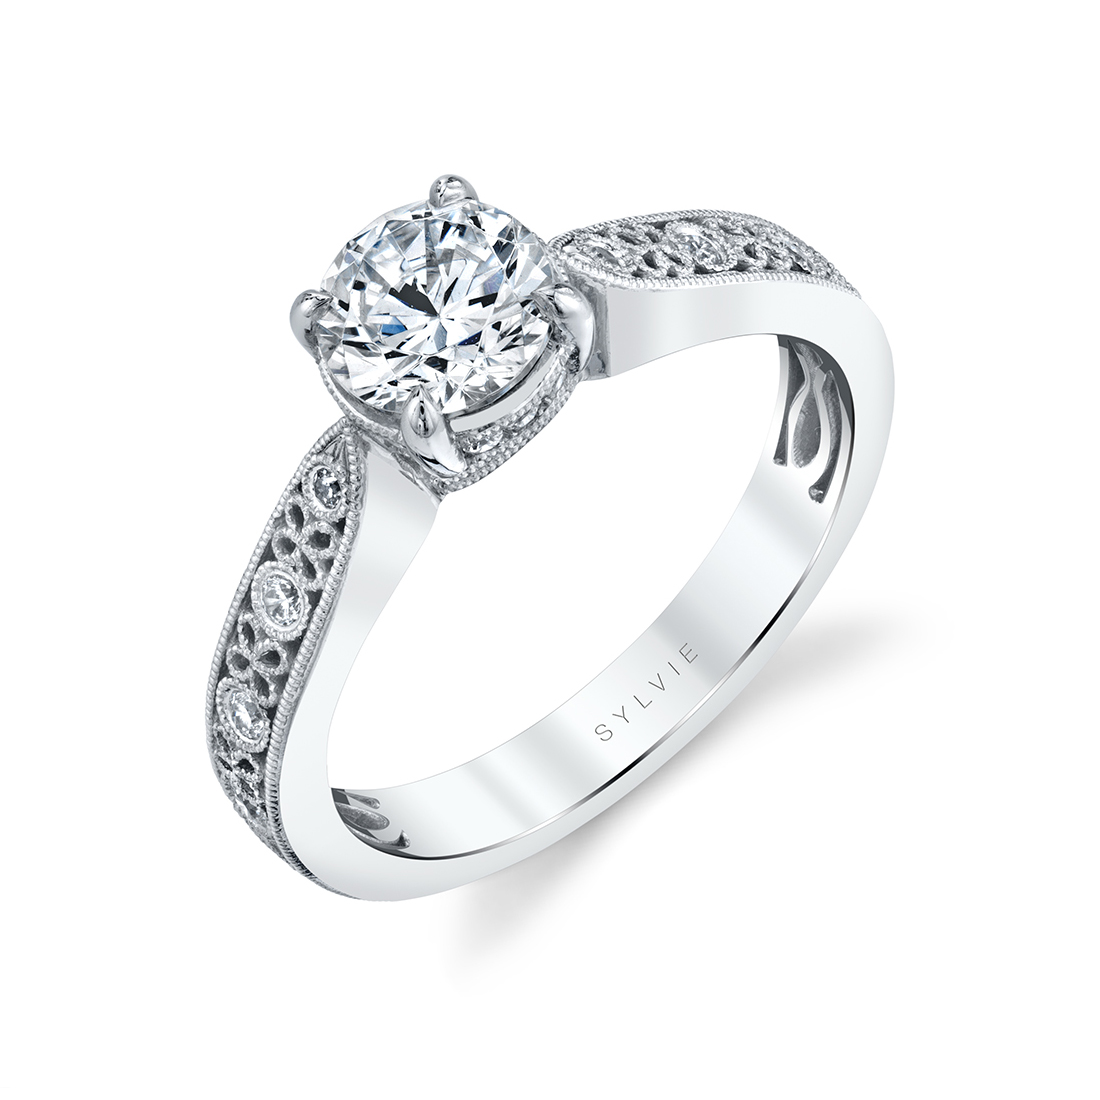 Side Profile of a Flower Engagement Ring - Olive - S2531